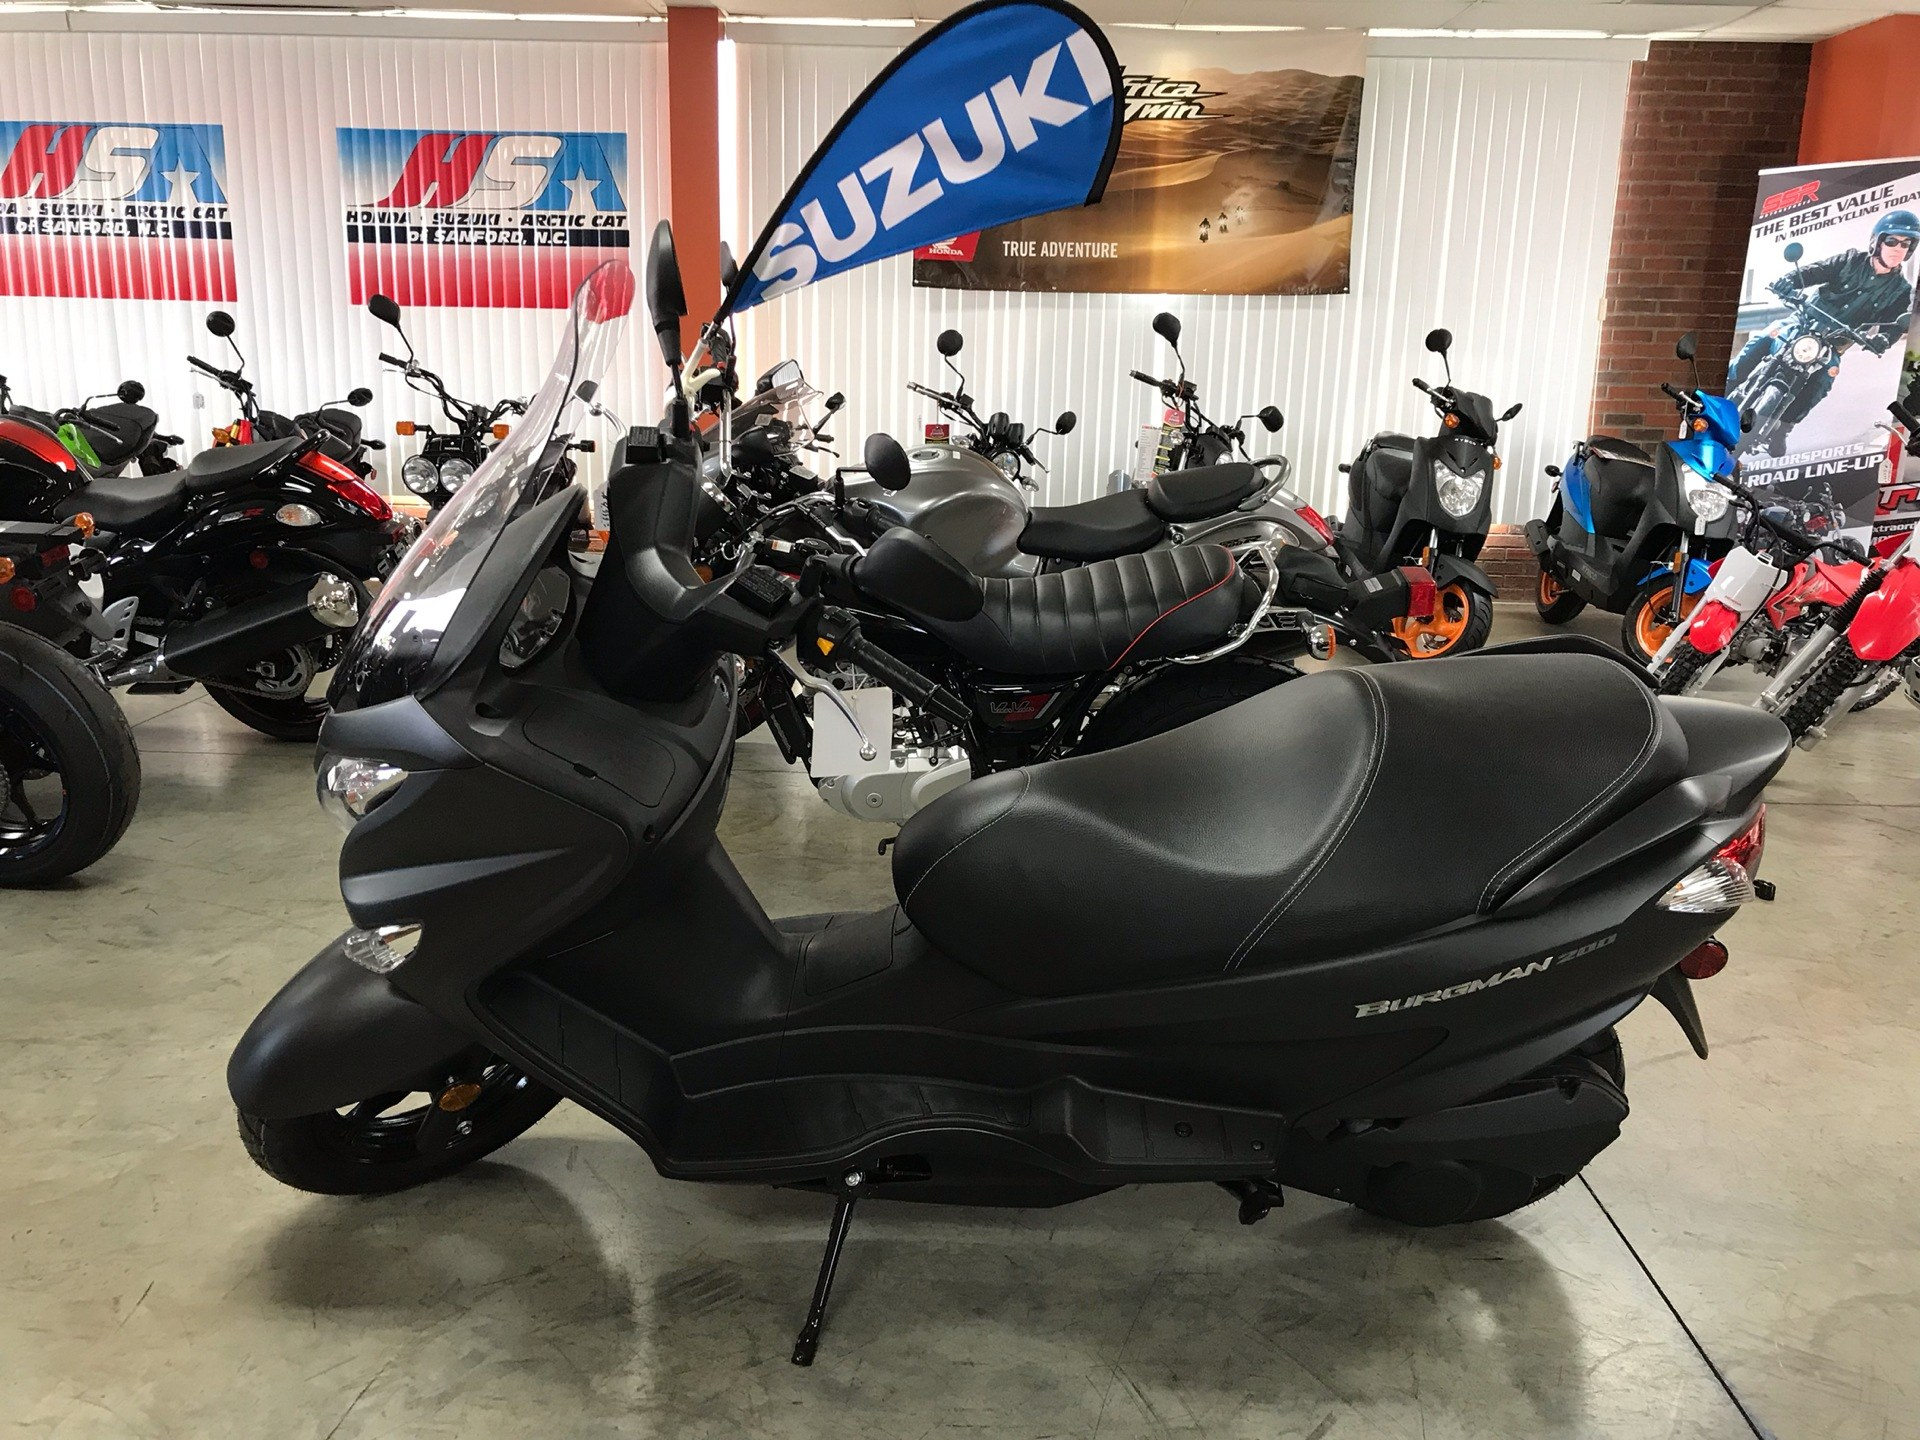 2019 Suzuki Burgman 200 in Sanford, North Carolina - Photo 1